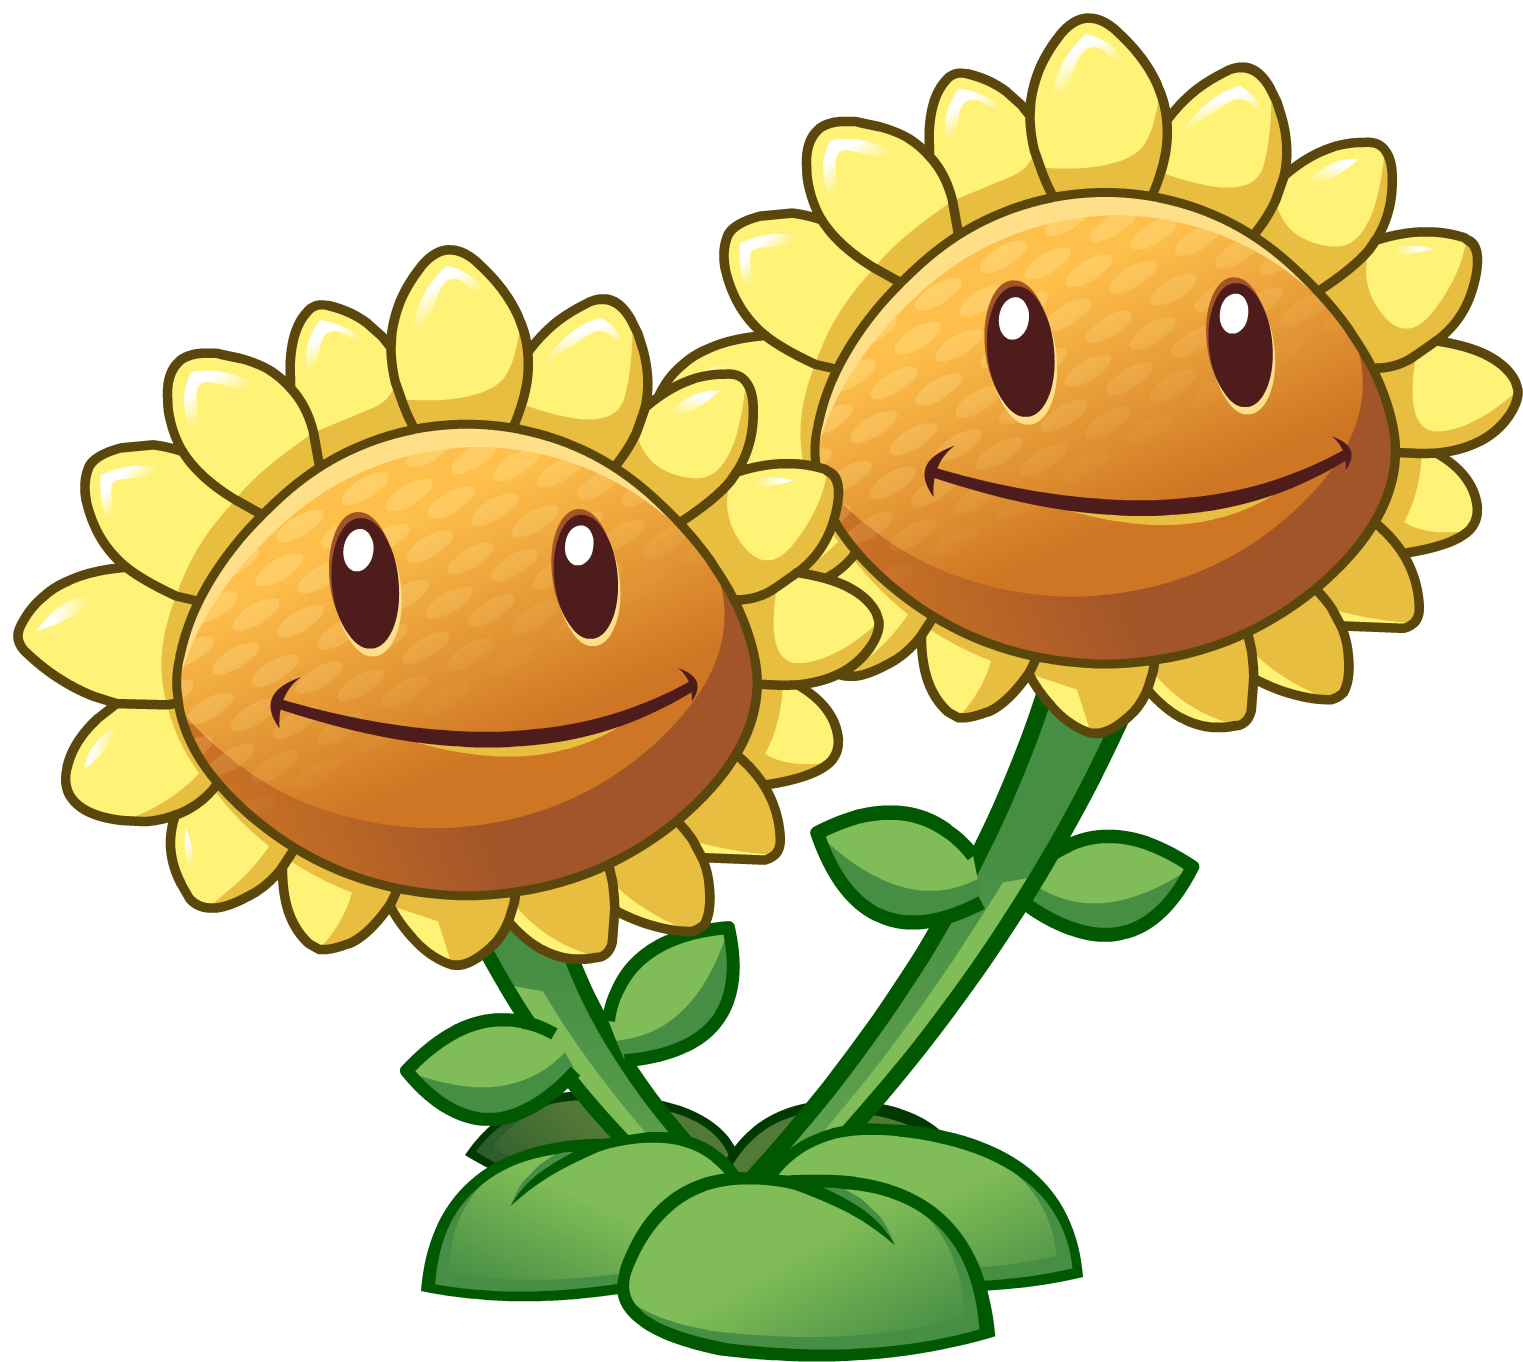 Plants V Zombies HD PNG - 92690